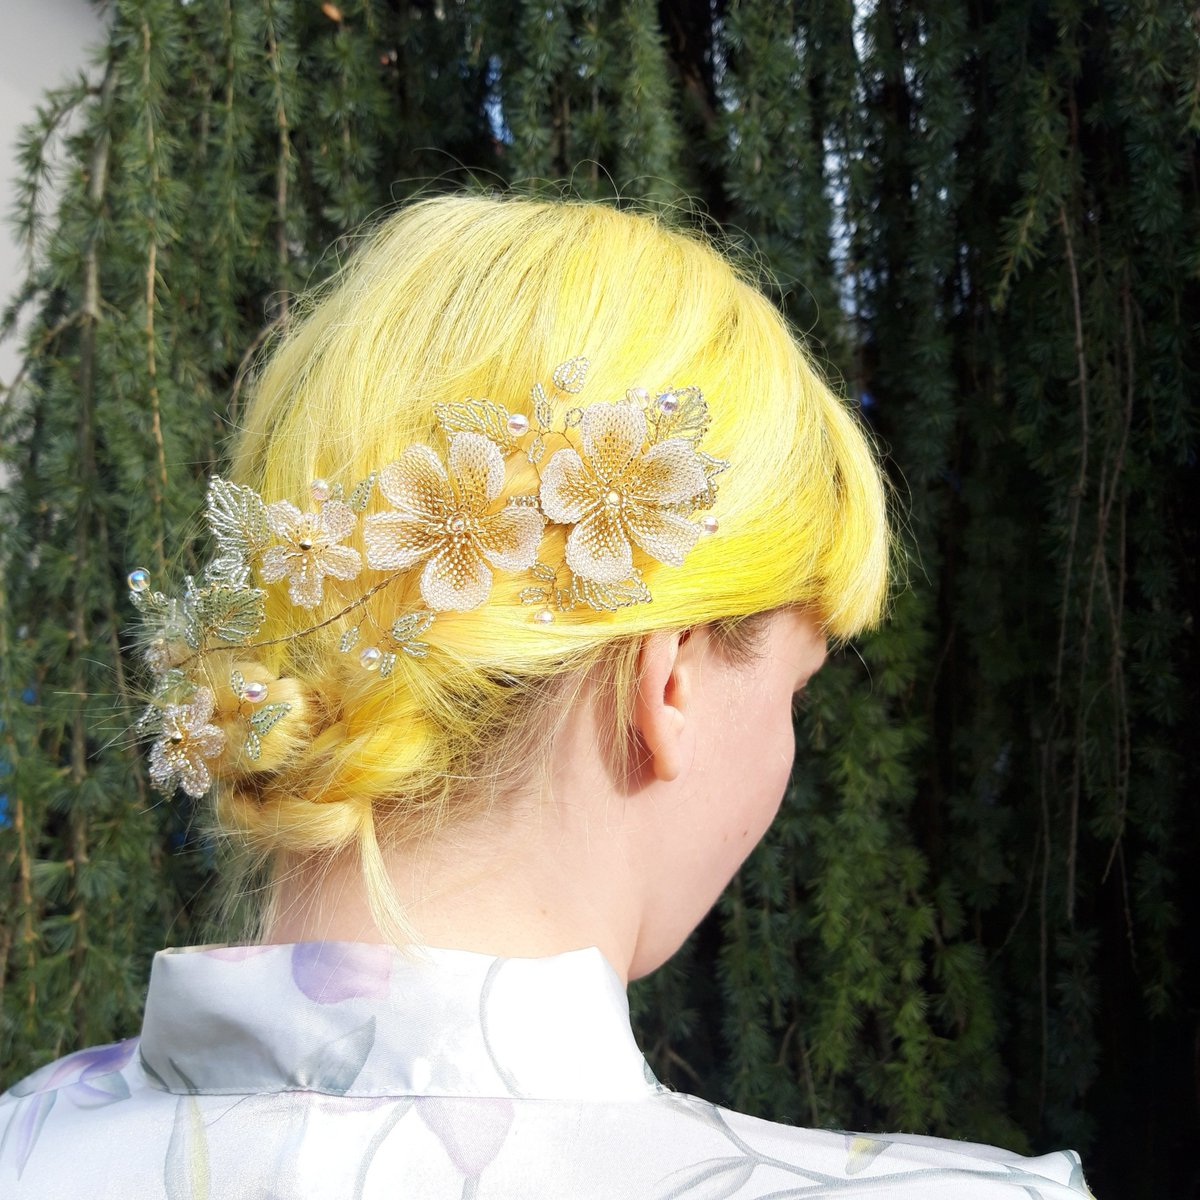 Modelled by my daughter the hair vine clipped to the side and gently draped before using a single pin to secure the end - stunning! @BritishCrafting http://ow.ly/T1Df50z4XnA  #tbch #weddinghair #bridalhairstyles #weddings #weddinginspiration #bridestyle #love #ukgifthour #ukgiftampic.twitter.com/ARJzu56IP1